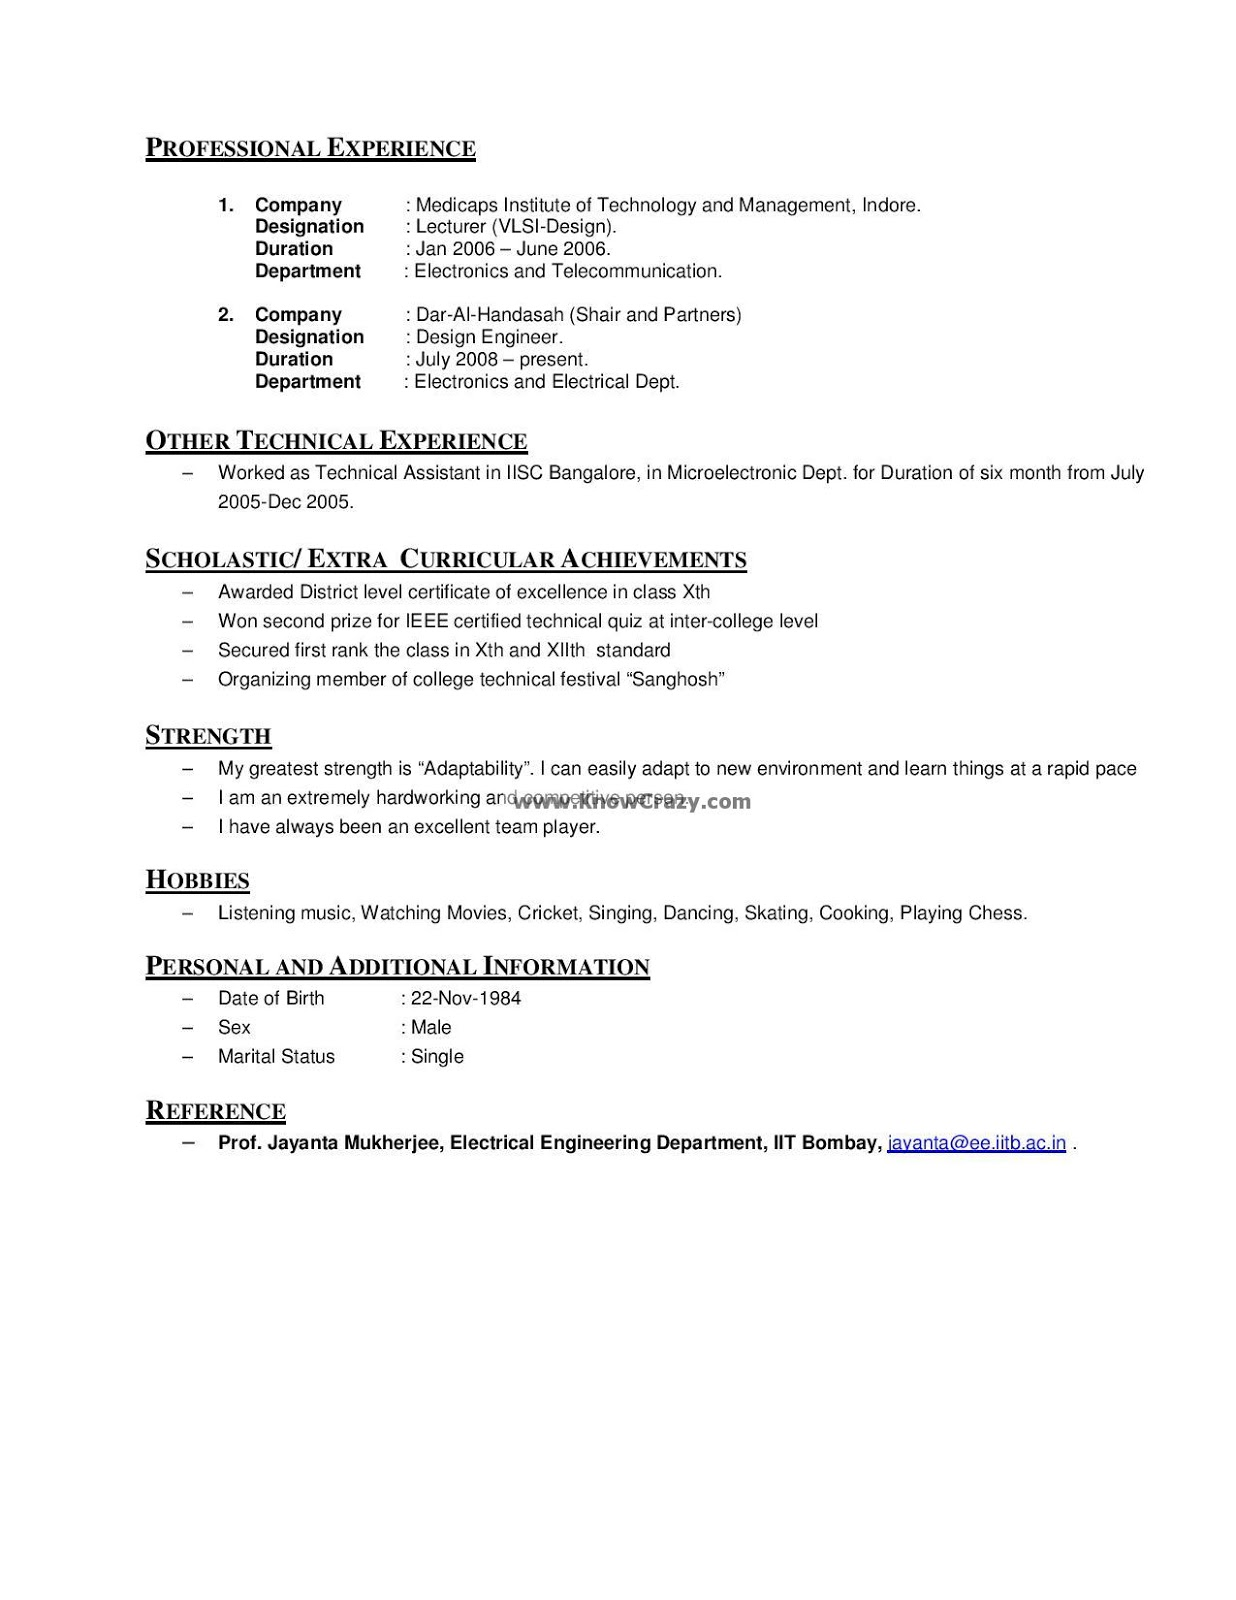 Personal Interests On A Resume Knowcrazy 10 27 12